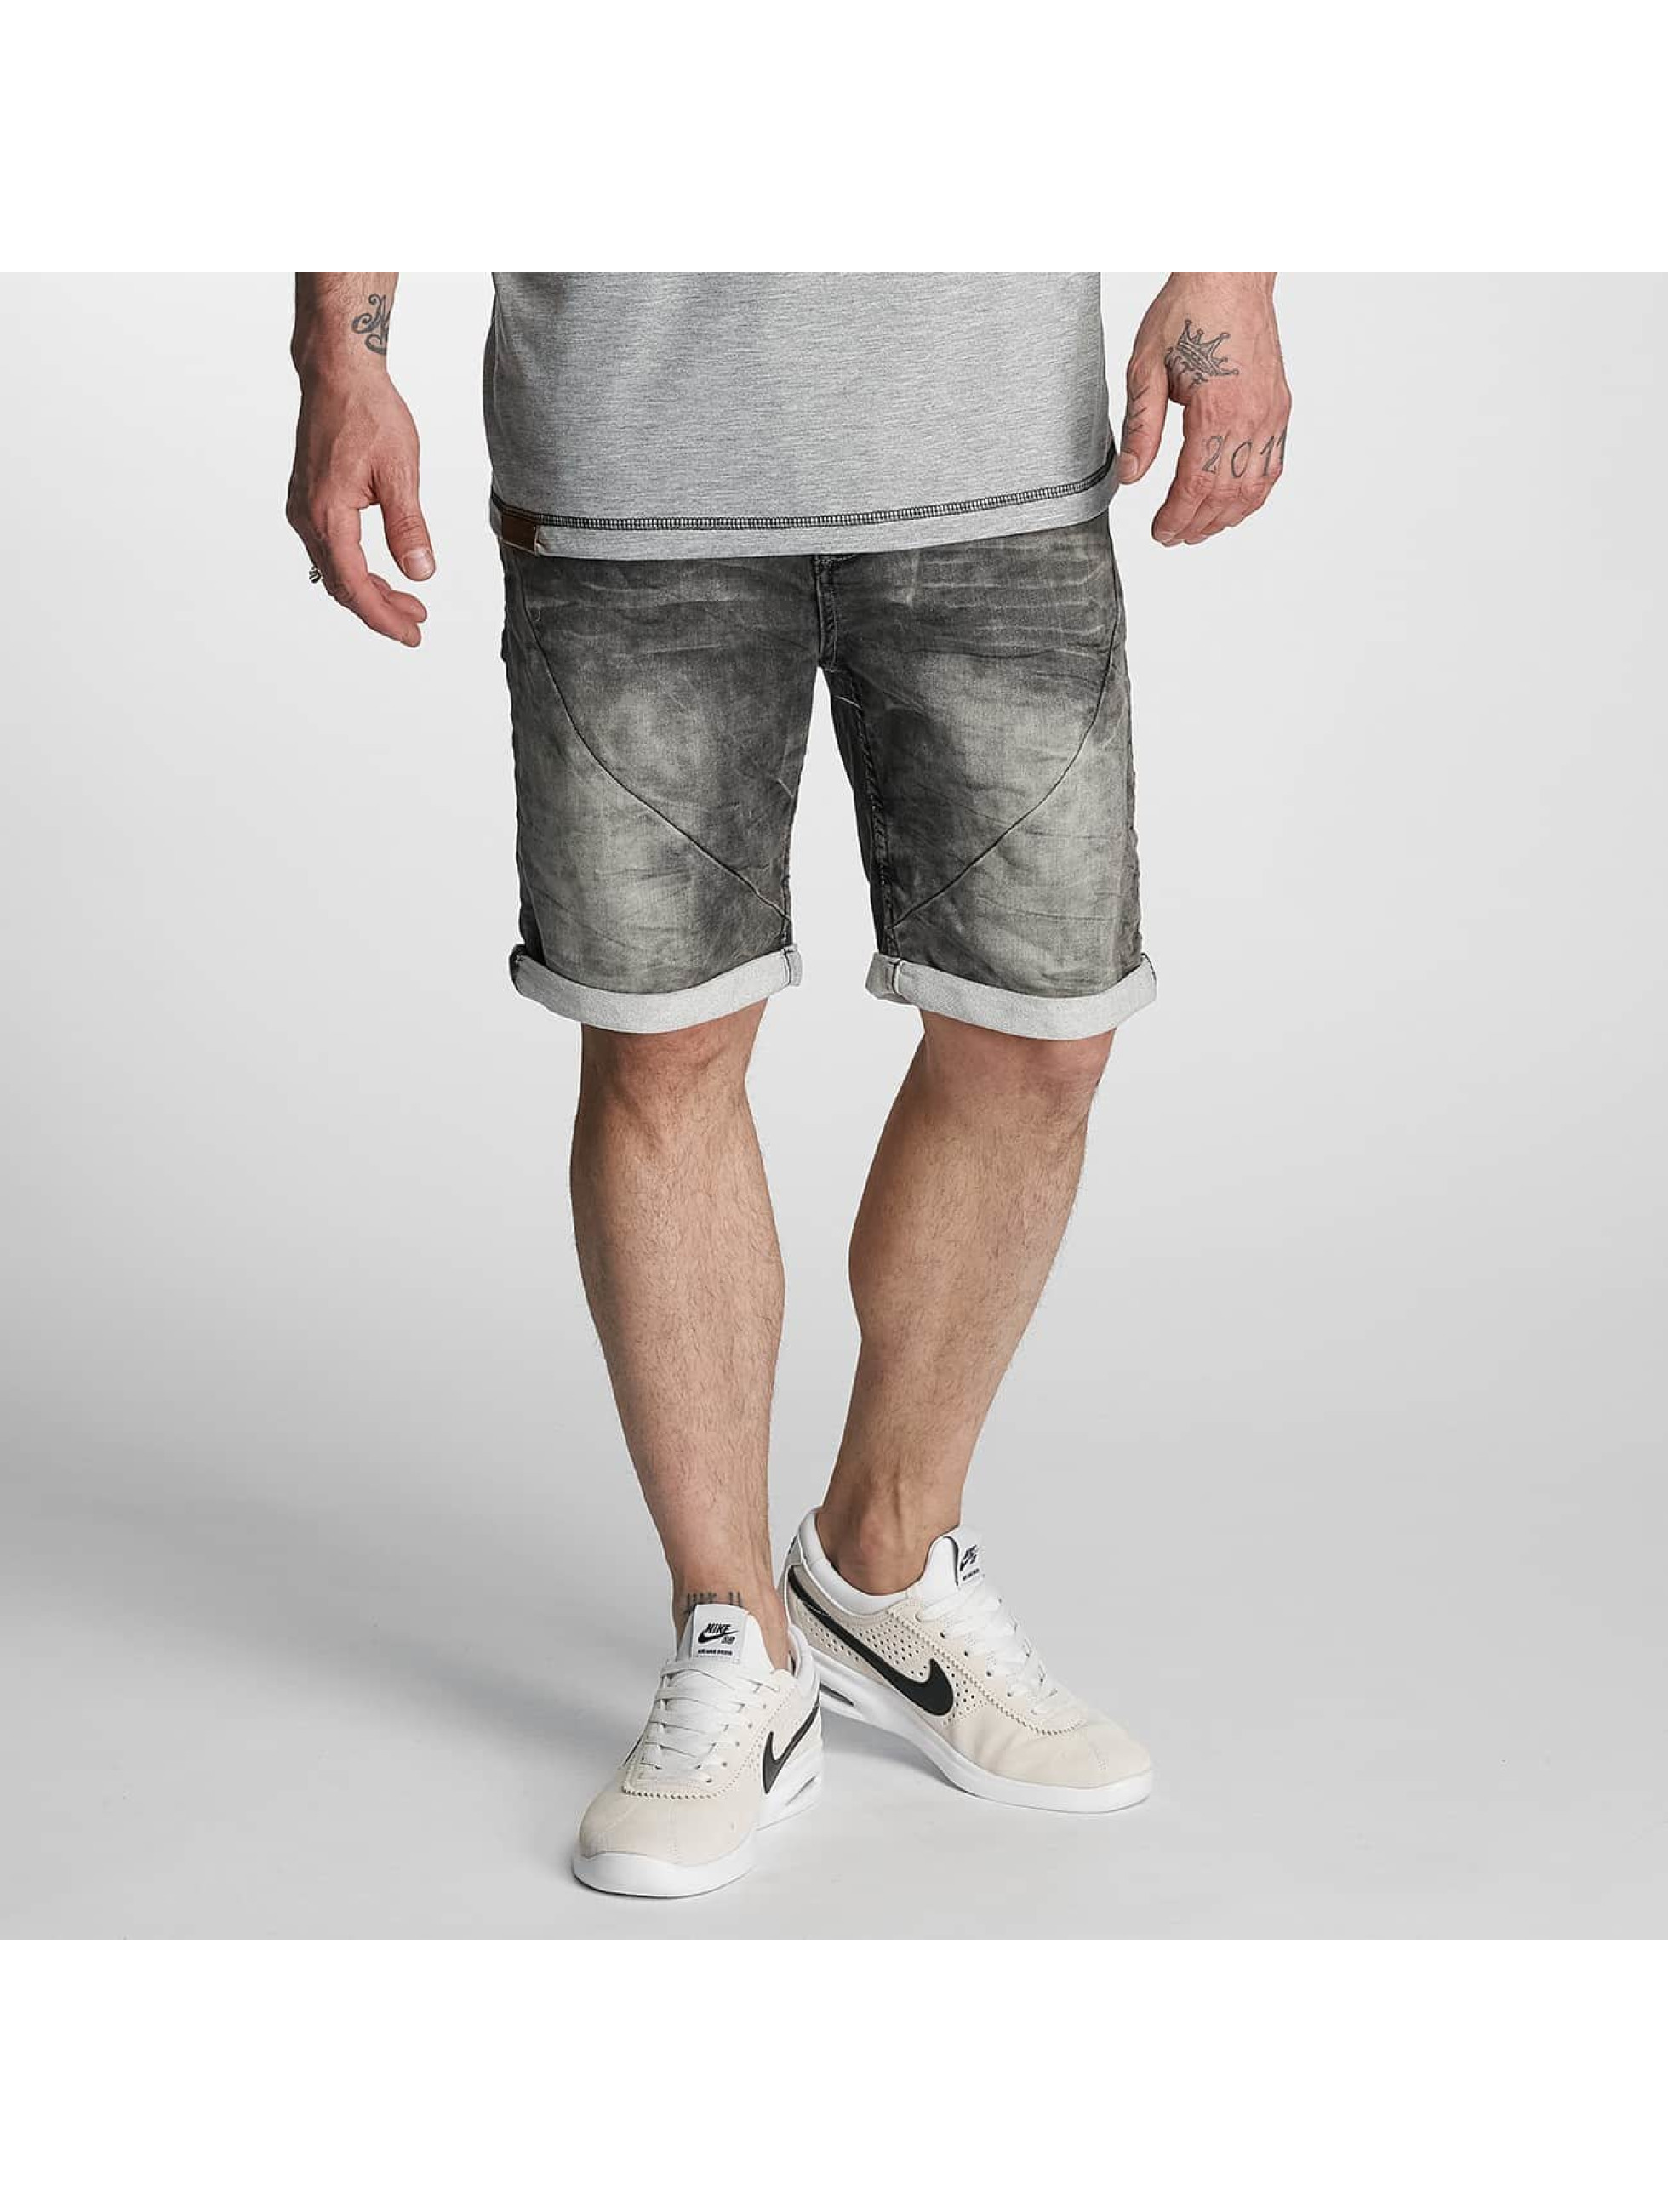 Authentic Style Pantalon / Shorts Sublevel Haka Bermuda Jogg Denim en gris